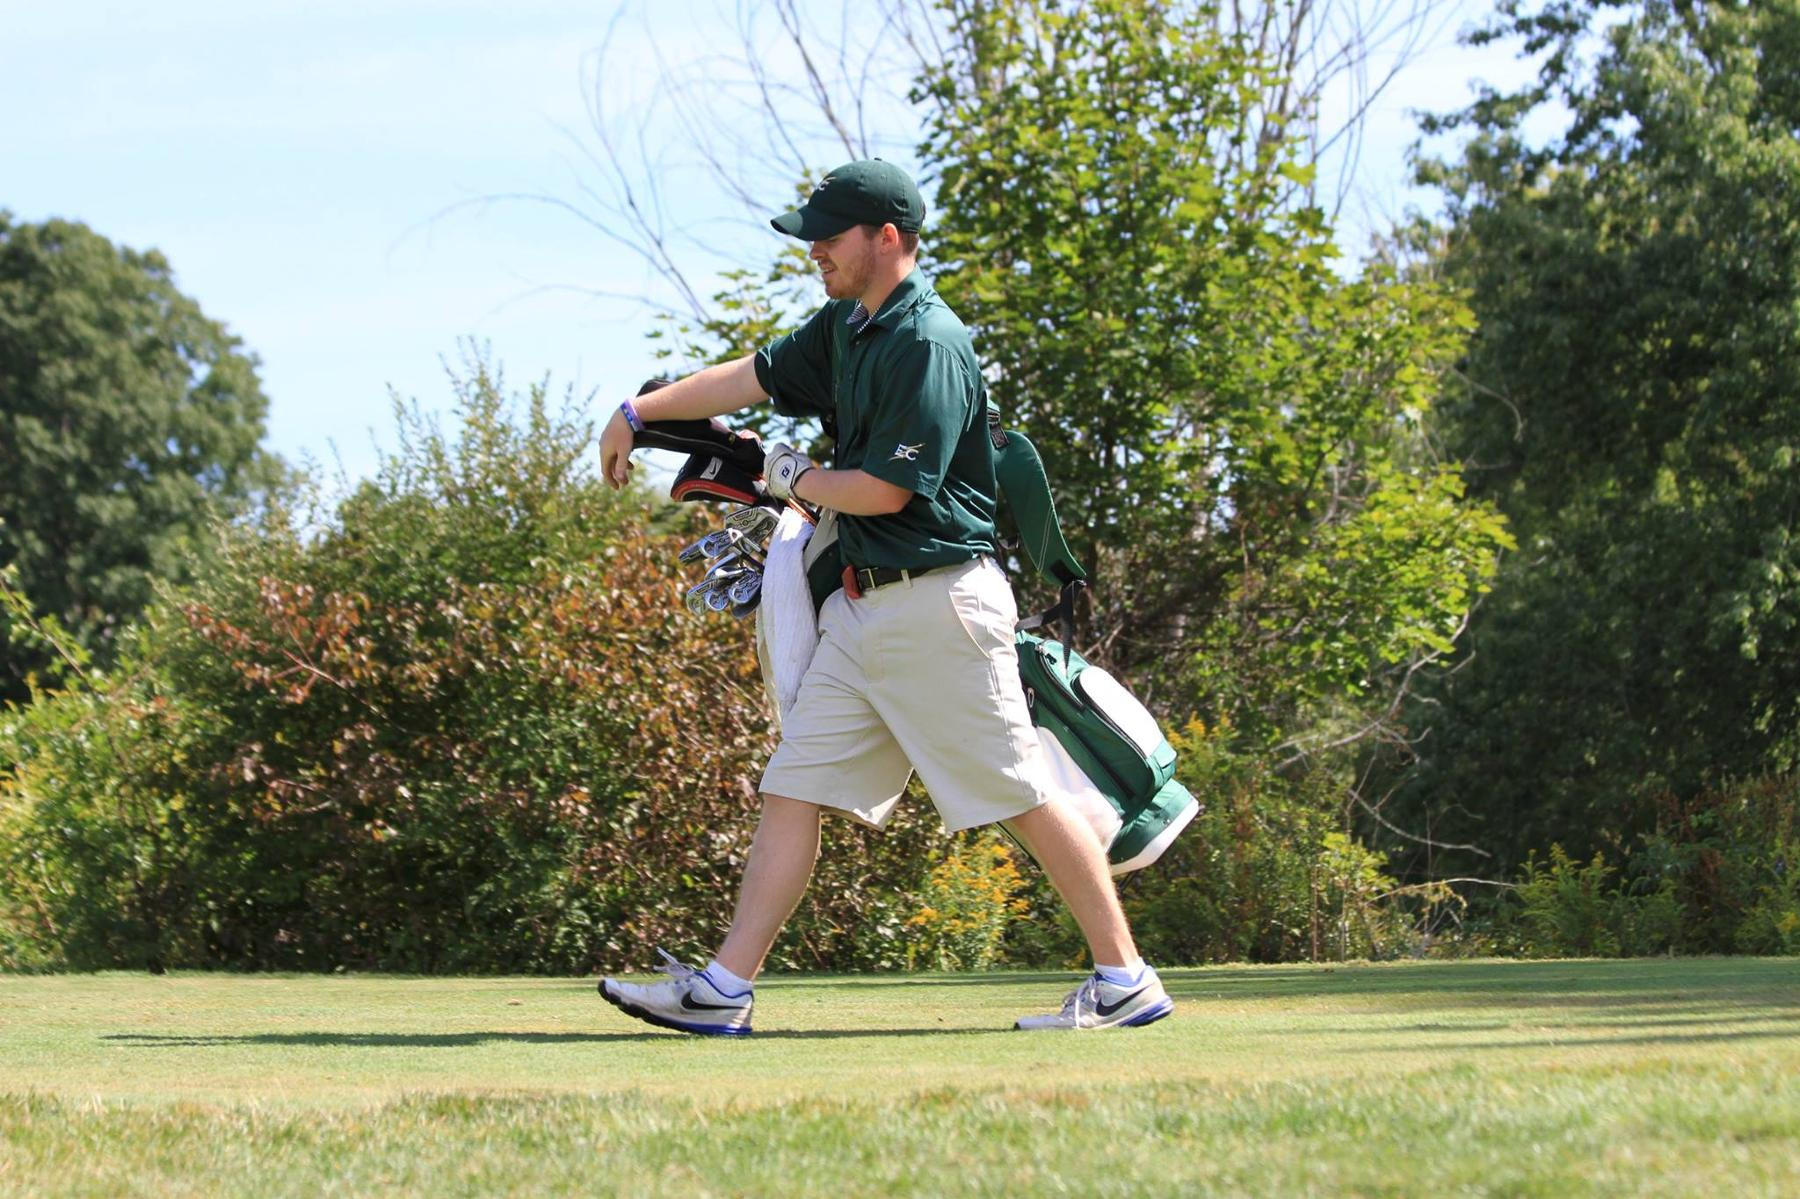 Men's Golf 12th After 18 Holes At JWU Invitational